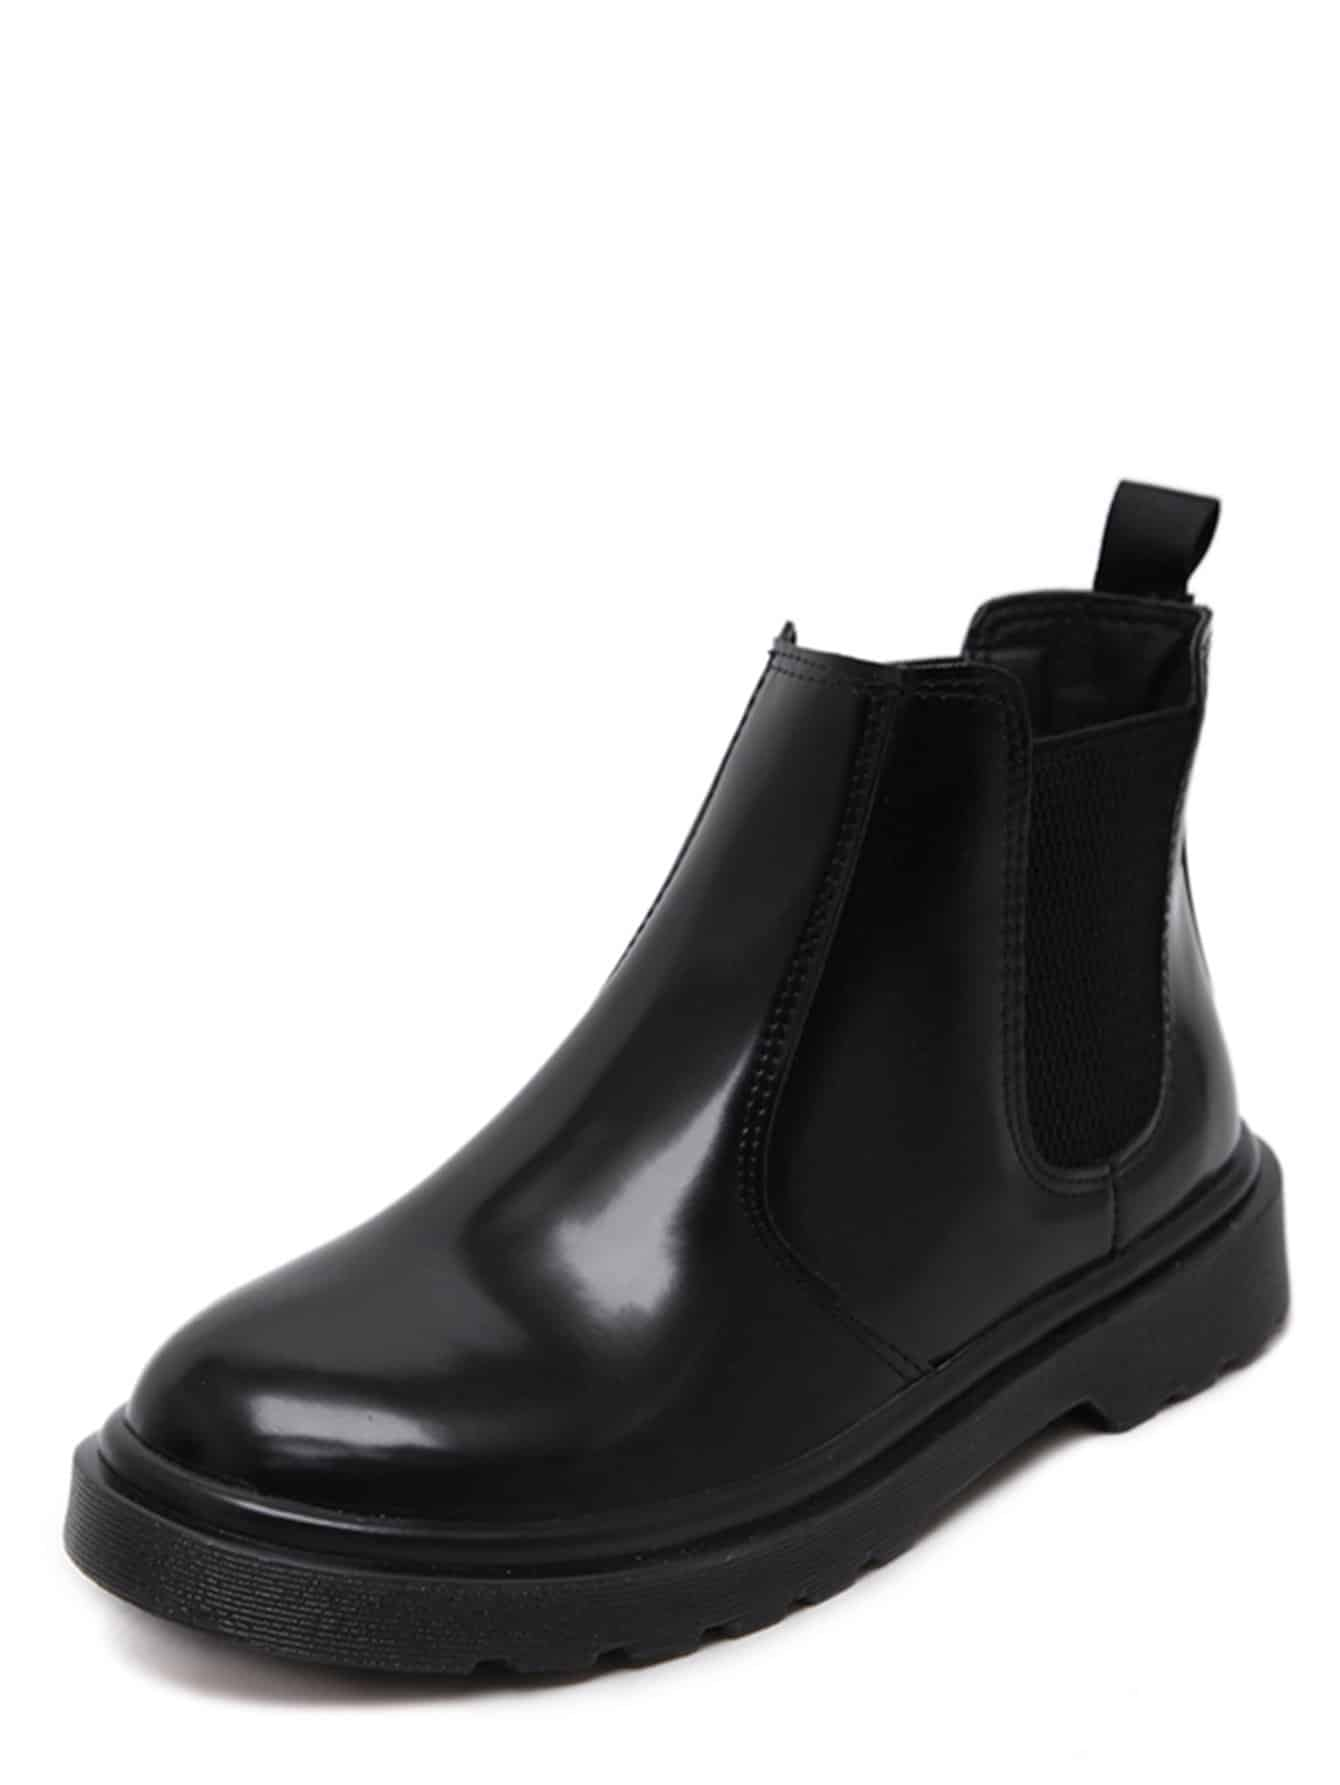 Black Faux Leather Round Toe Elastic Ankle Boots